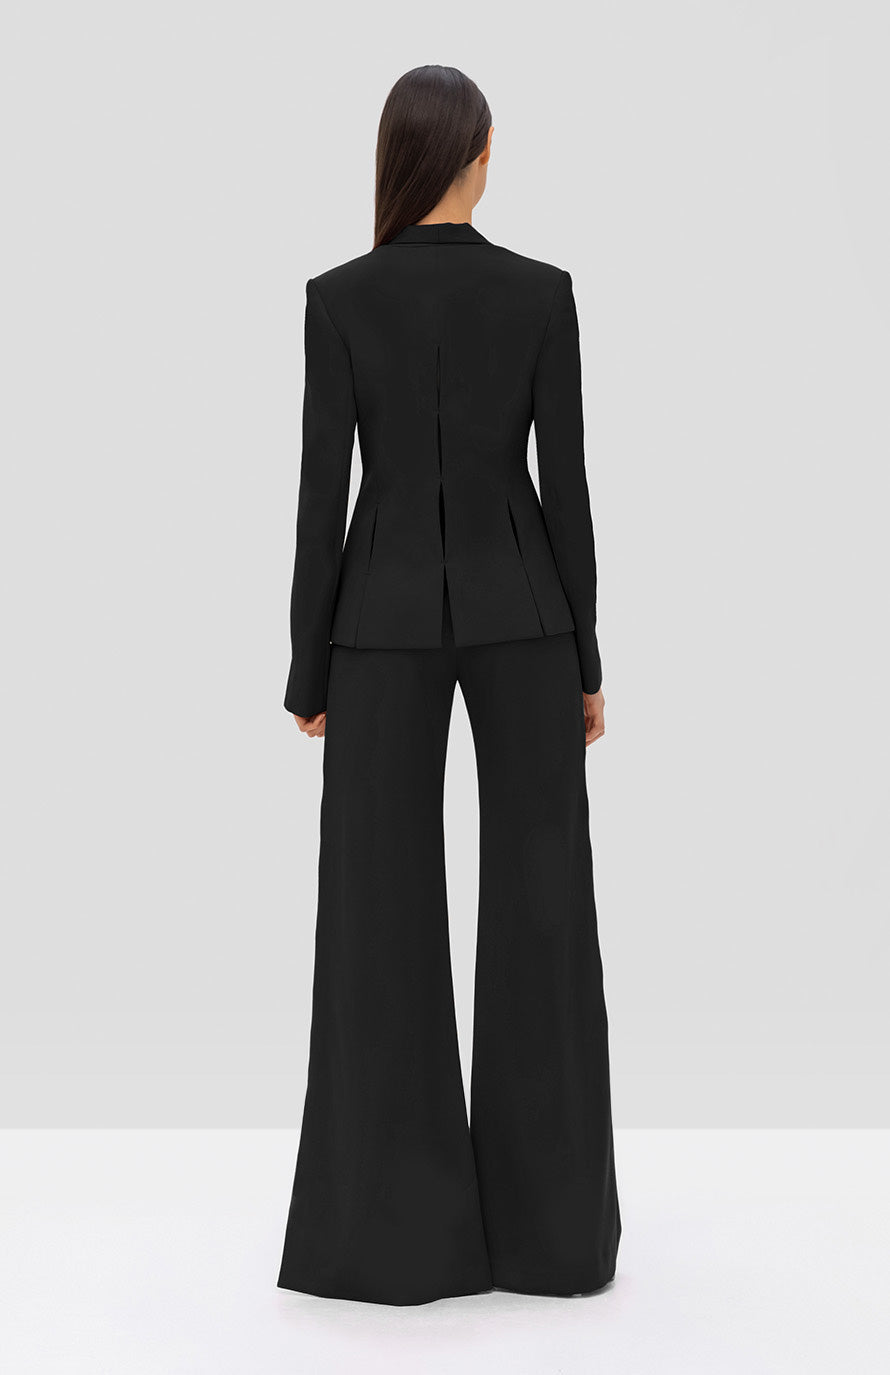 Alexis Vaska Blazer and Roque Pant Black - Rear View